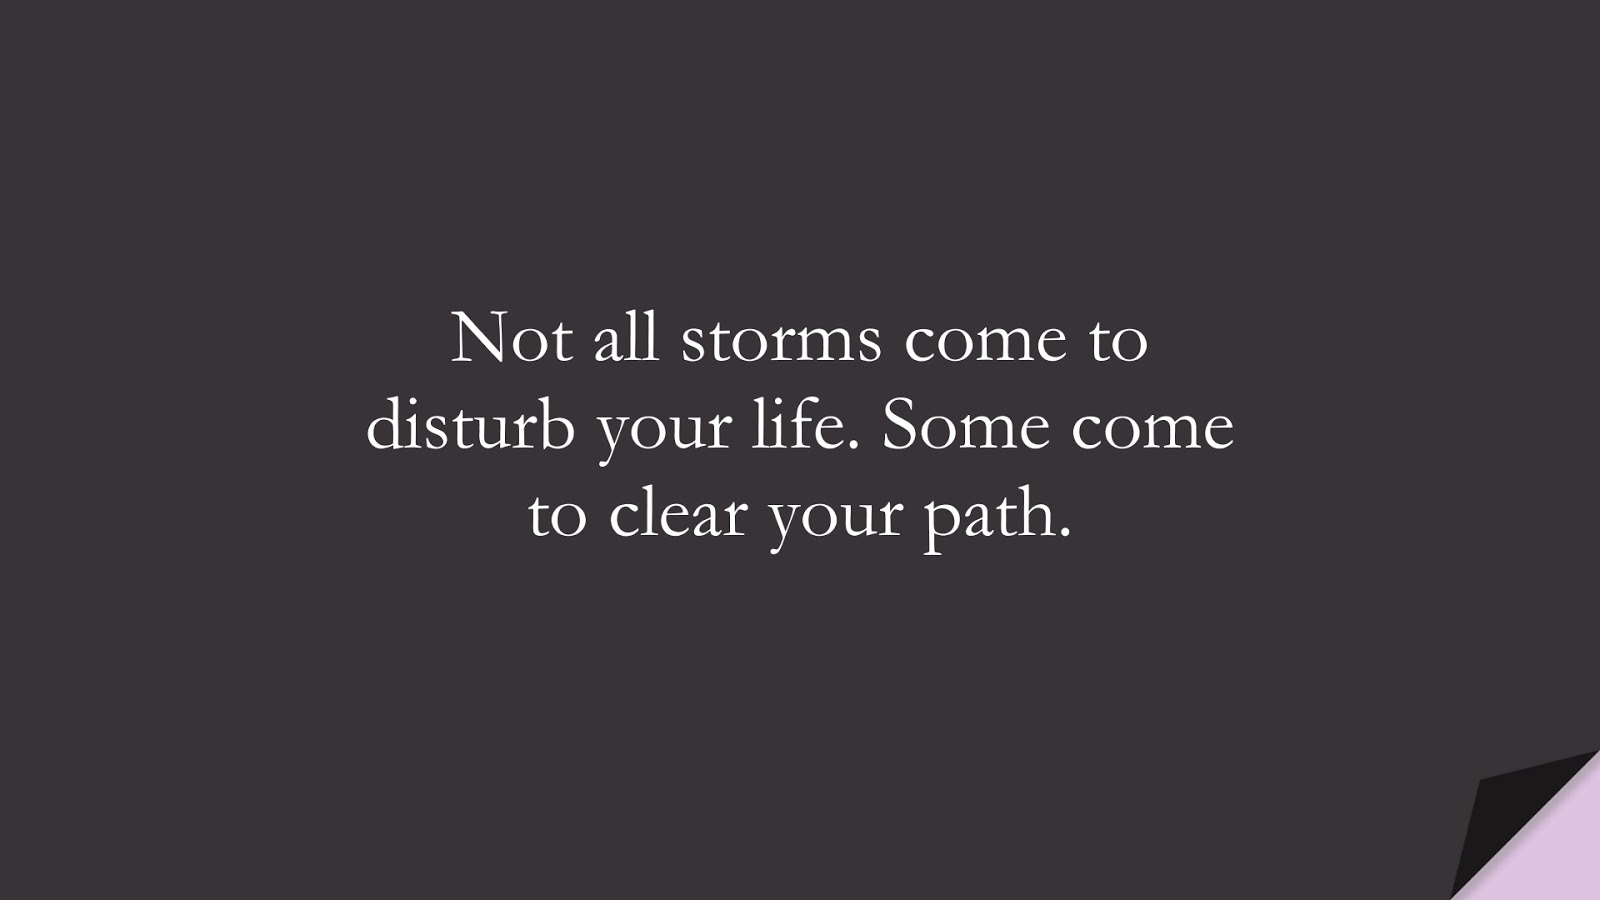 Not all storms come to disturb your life. Some come to clear your path.FALSE